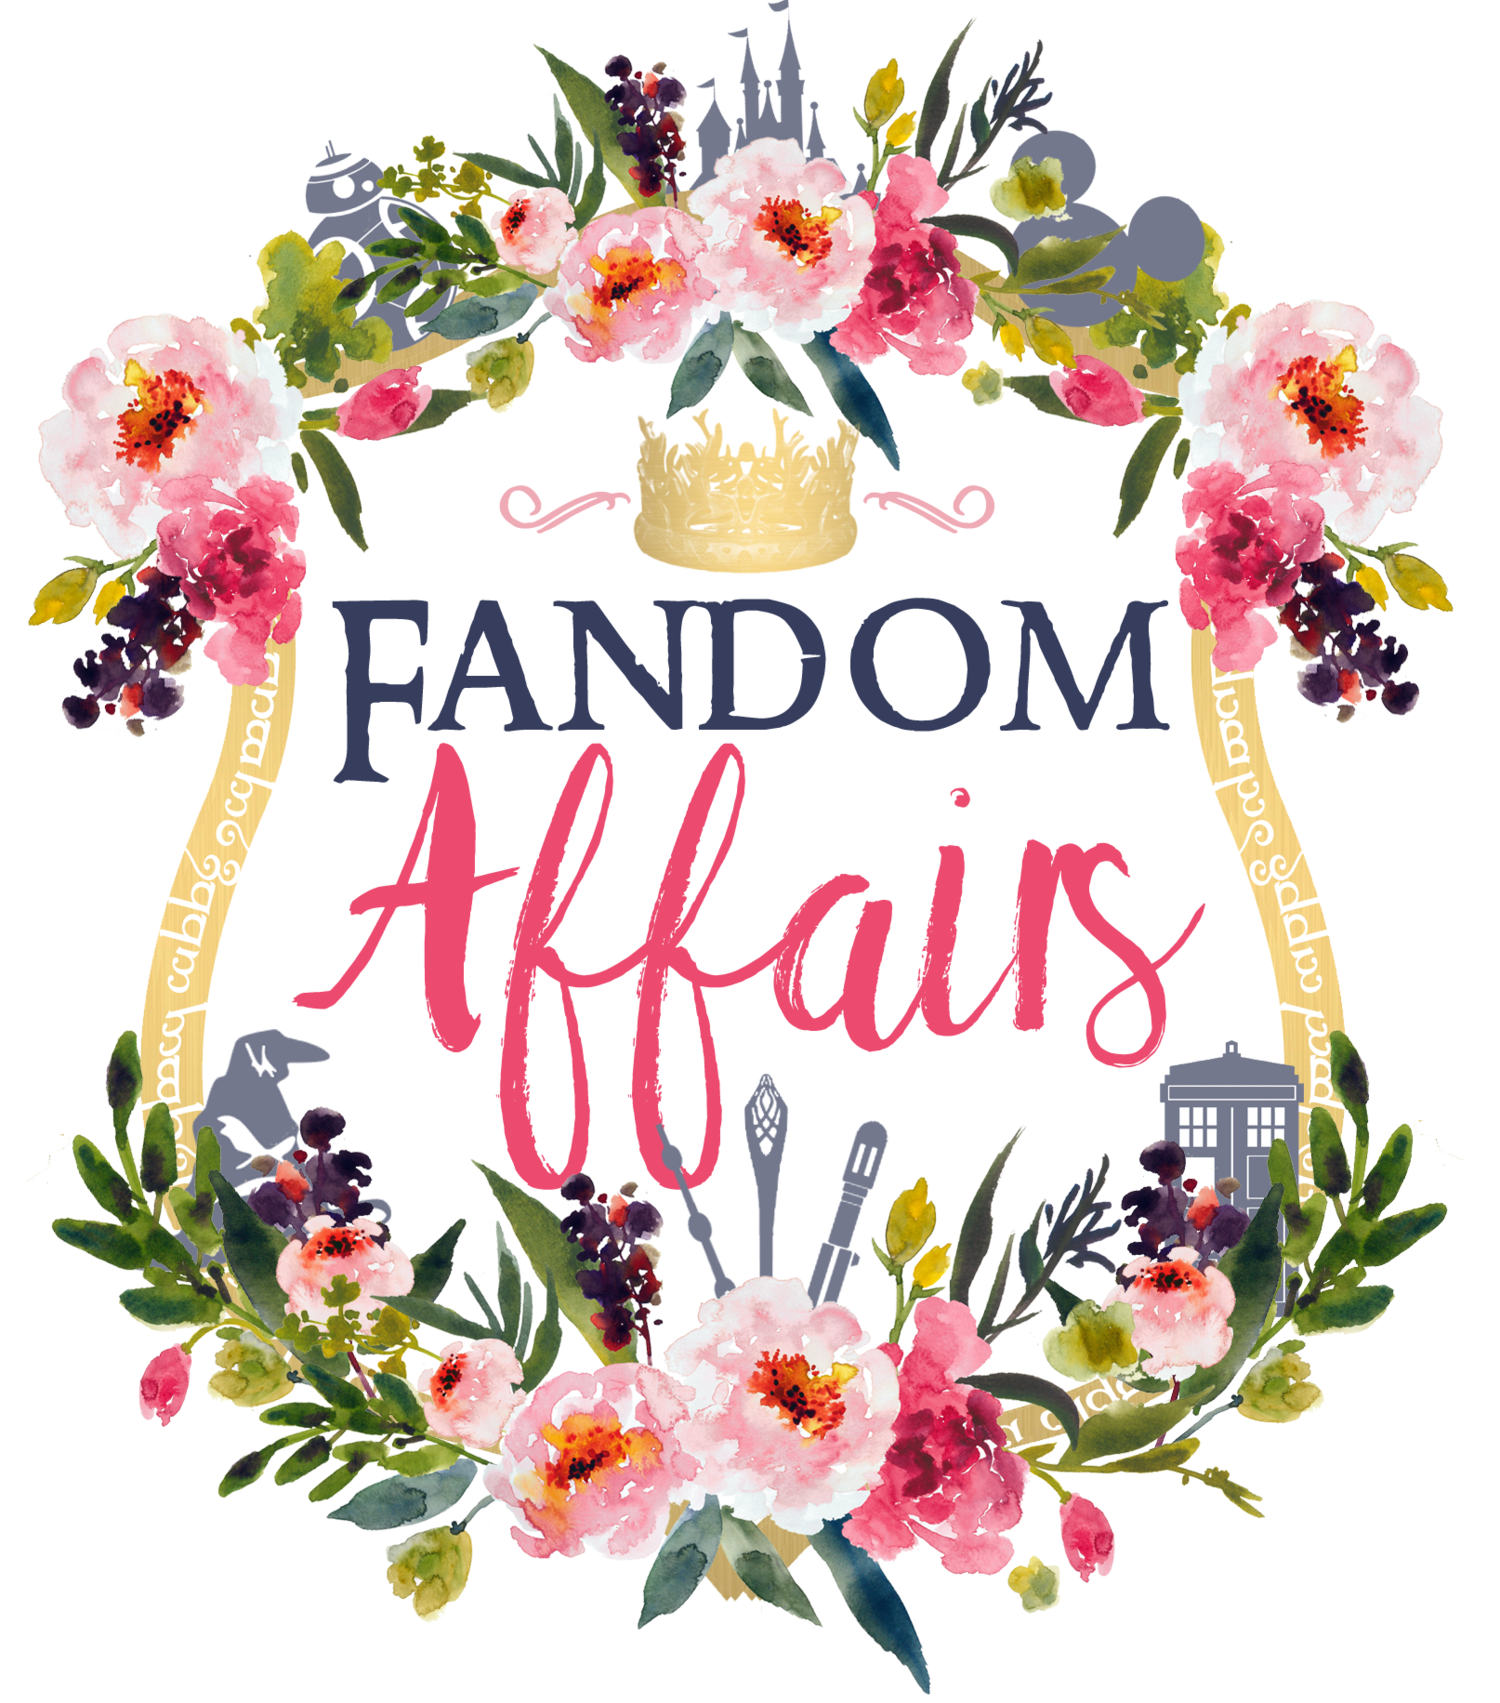 Fandom Affairs - Orlando, FL Wedding Planner